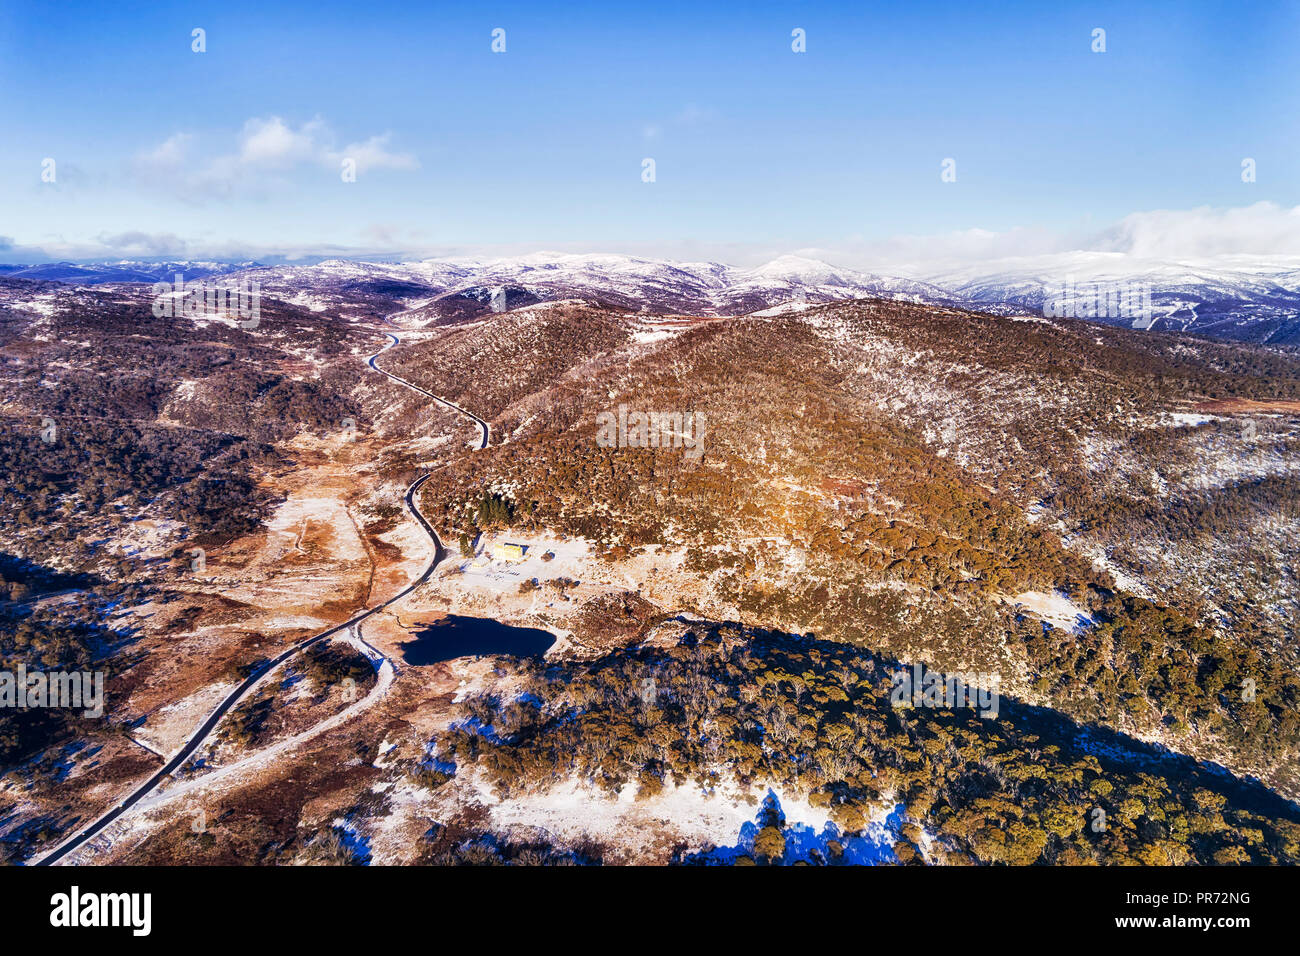 Distant mountains peaks covered by white snow in winter season high in Snowy mountains of australia - popular skiing and snowboarding resort of Perish - Stock Image